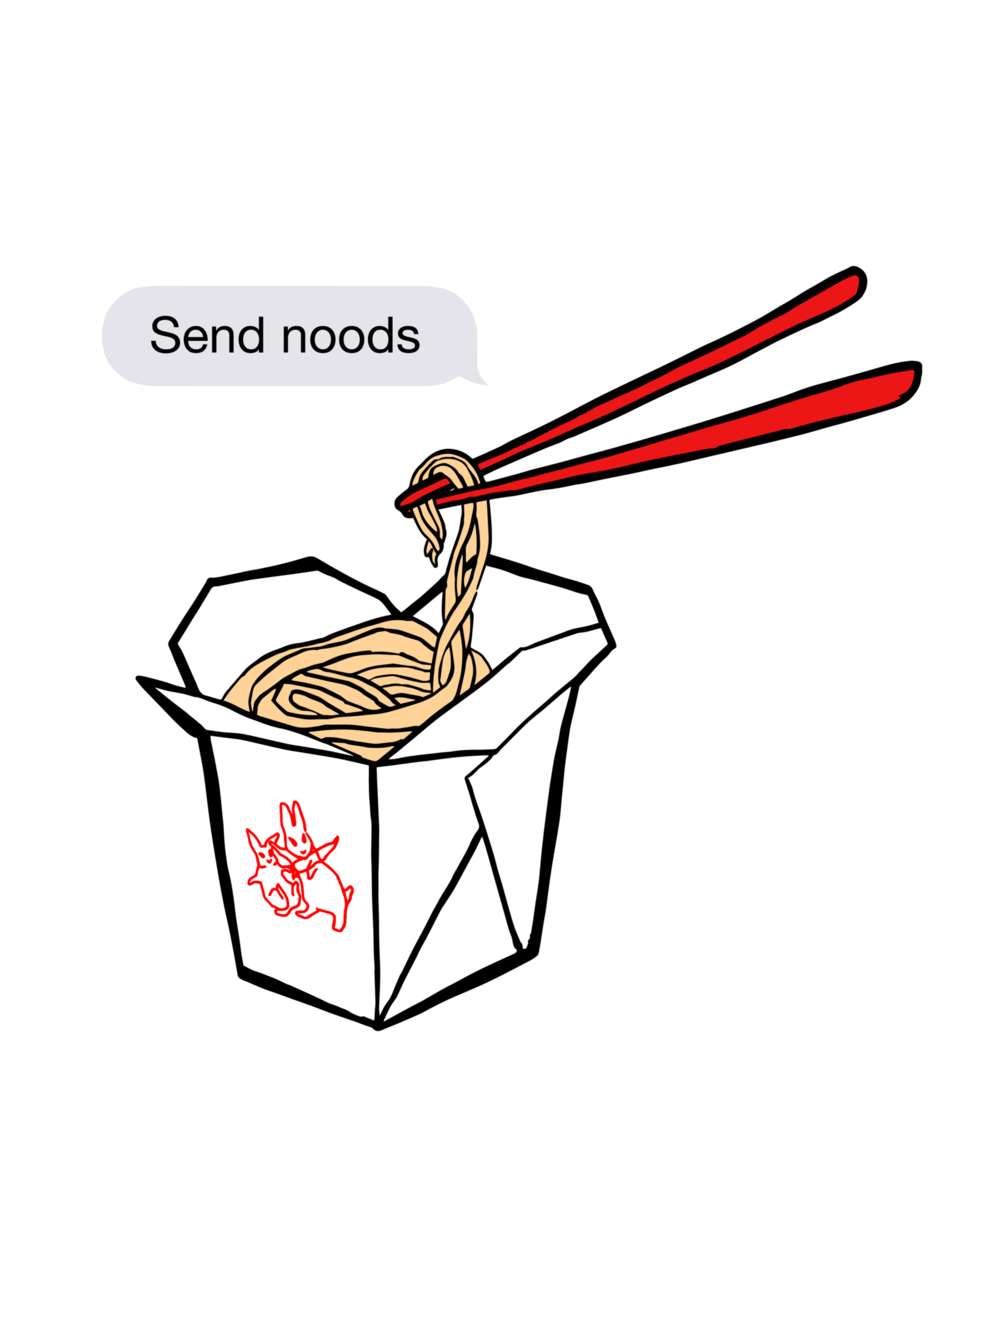 gianna_merch_send_noods_printfile_front.png